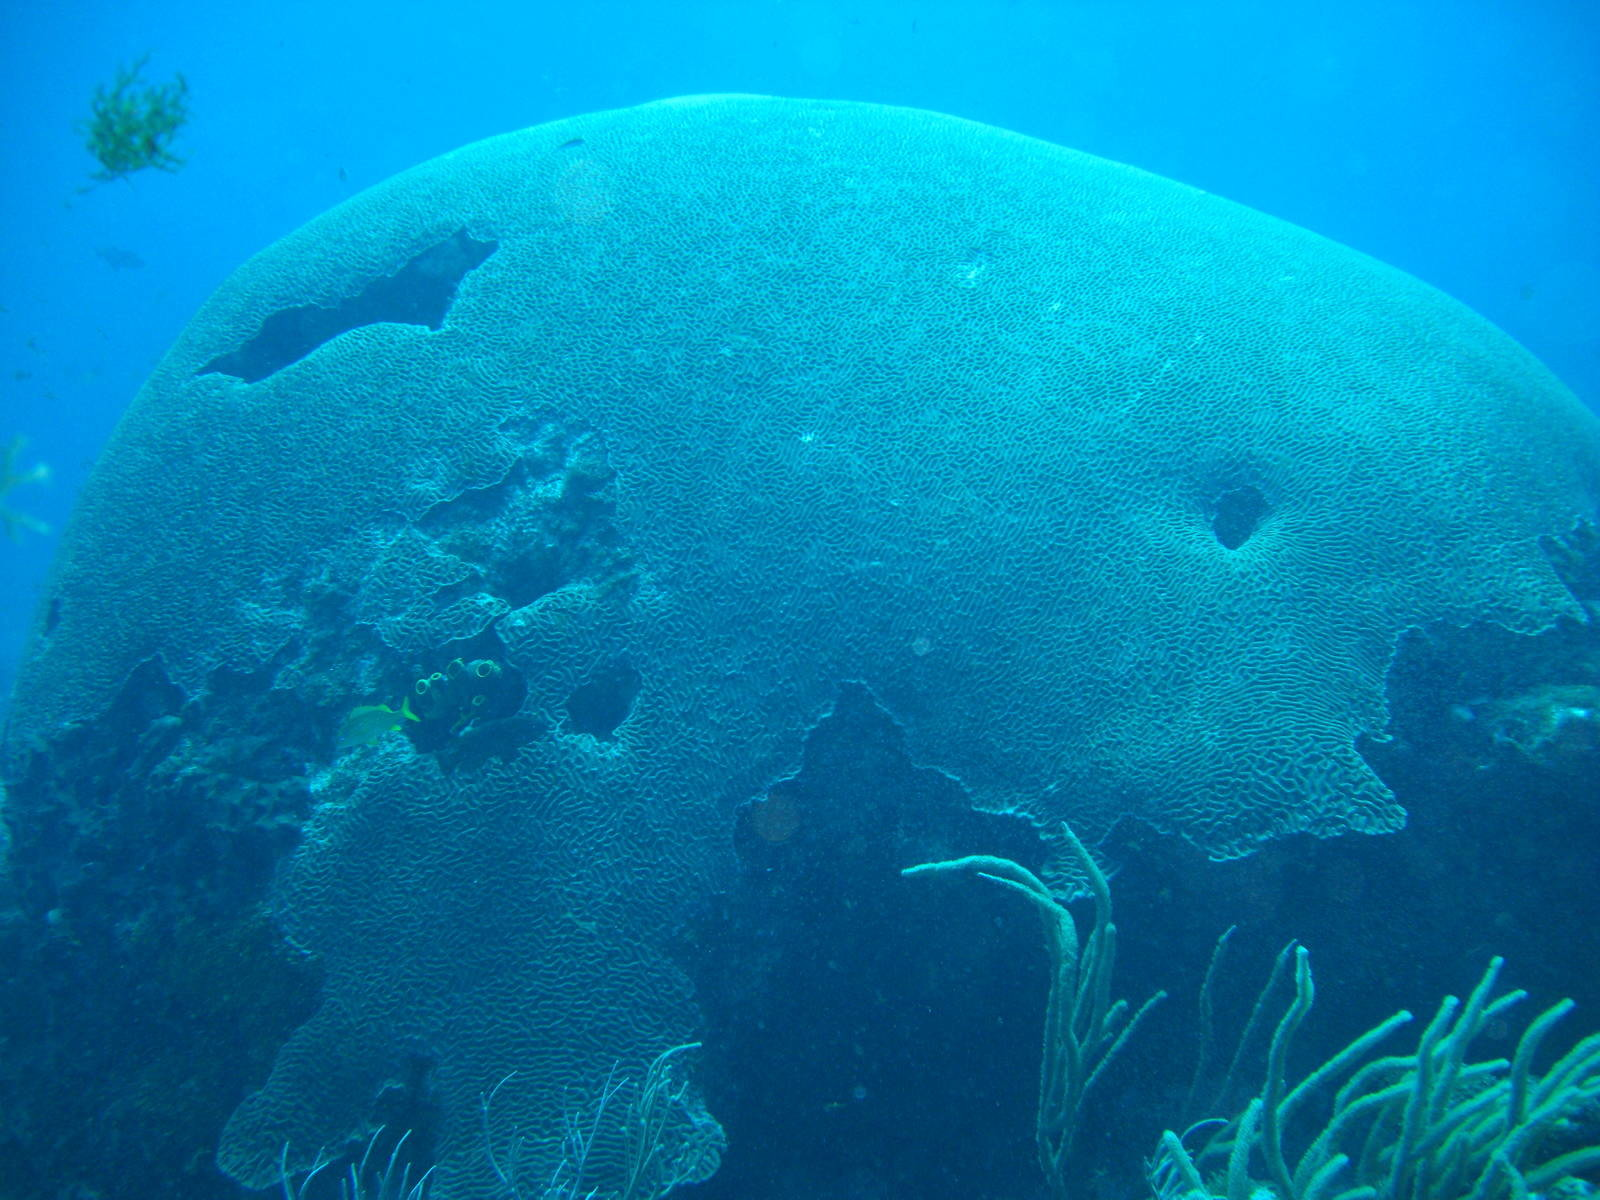 Giant Brain Coral at Kelston Drain, Tobago